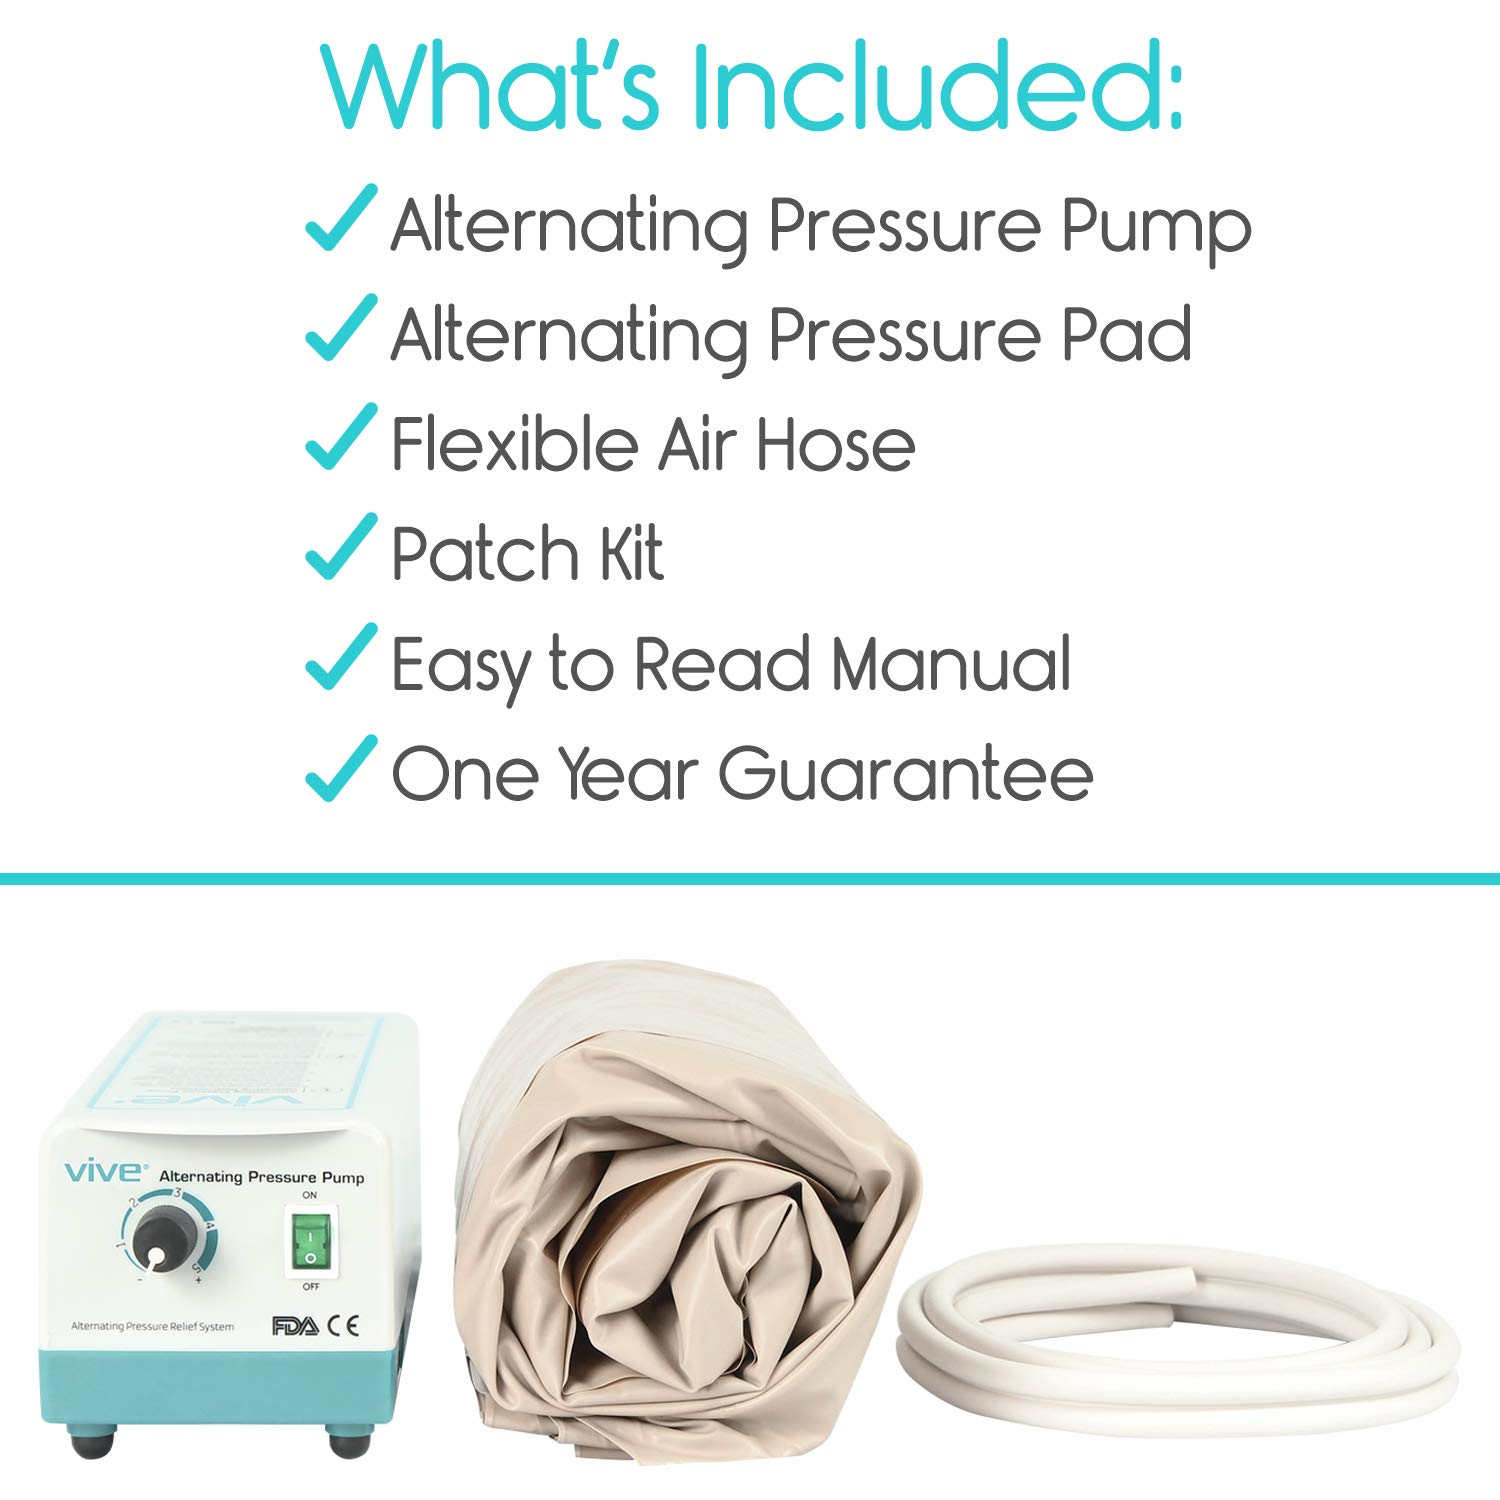 Vive Alternating Pressure Pad - Includes Mattress Pad and Electric